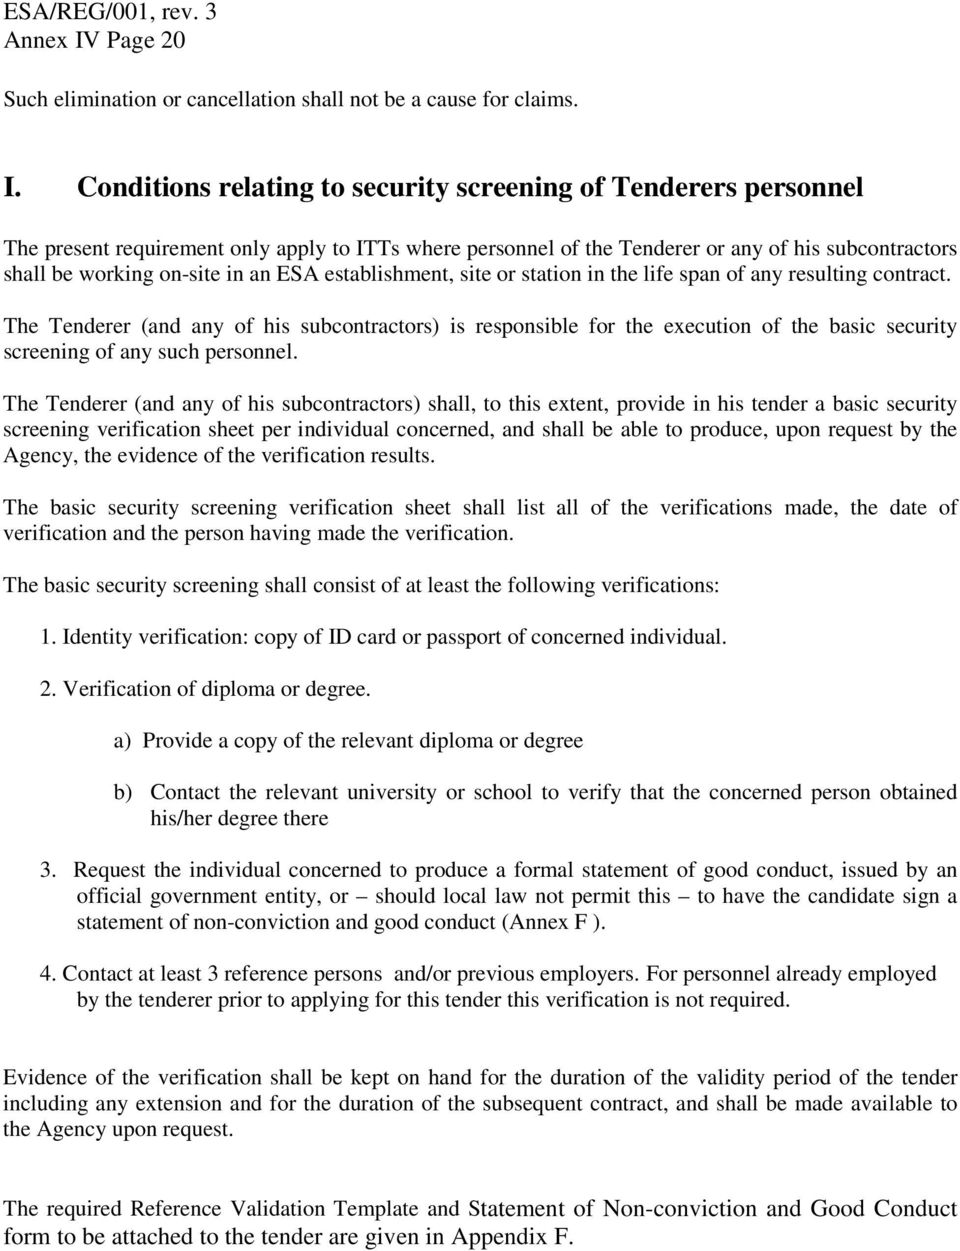 Conditions relating to security screening of Tenderers personnel The present requirement only apply to ITTs where personnel of the Tenderer or any of his subcontractors shall be working on-site in an